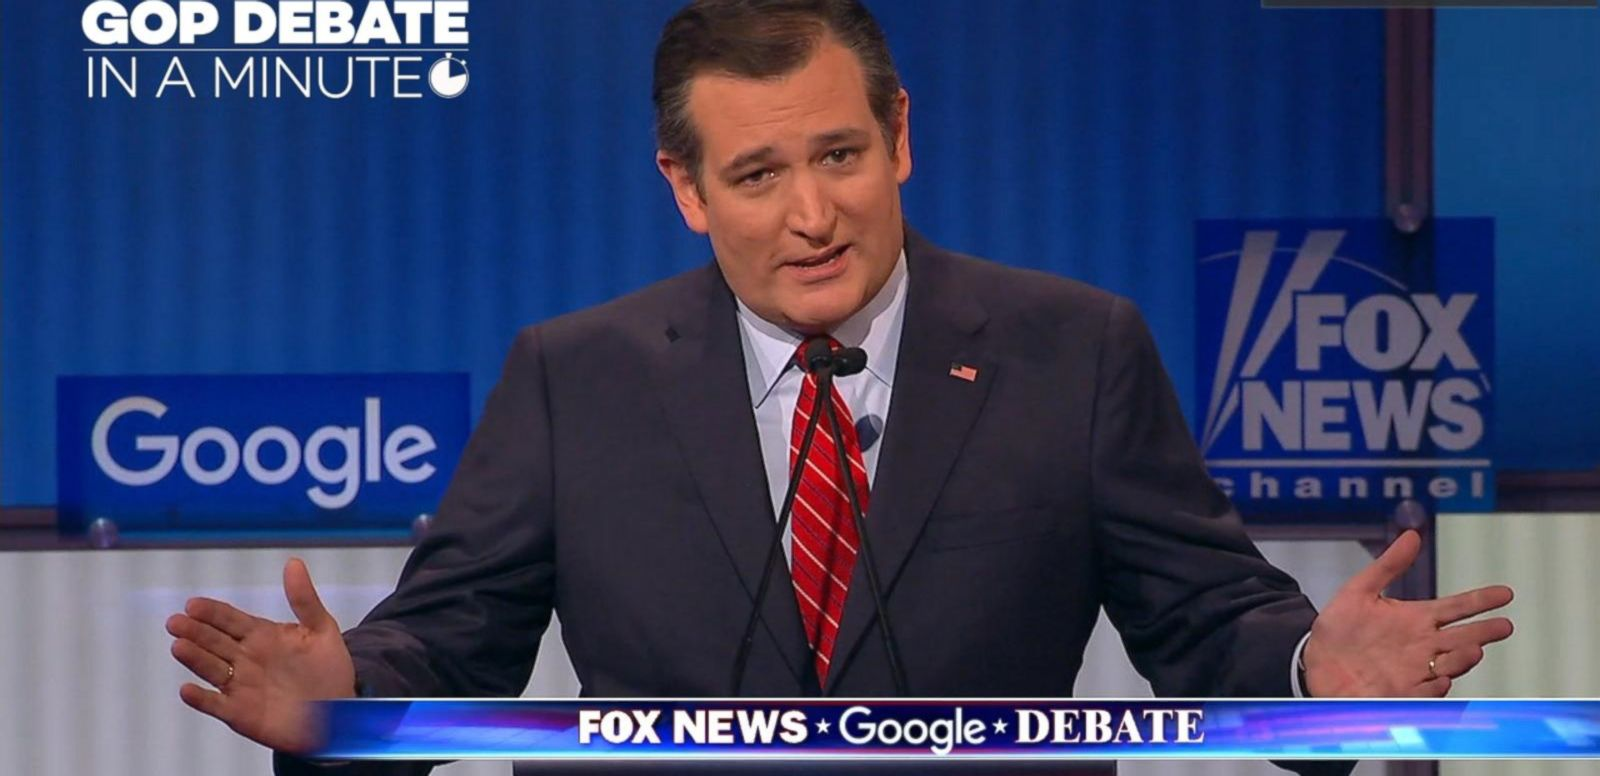 VIDEO: Seventh Republican Presidential Debate In A Minute